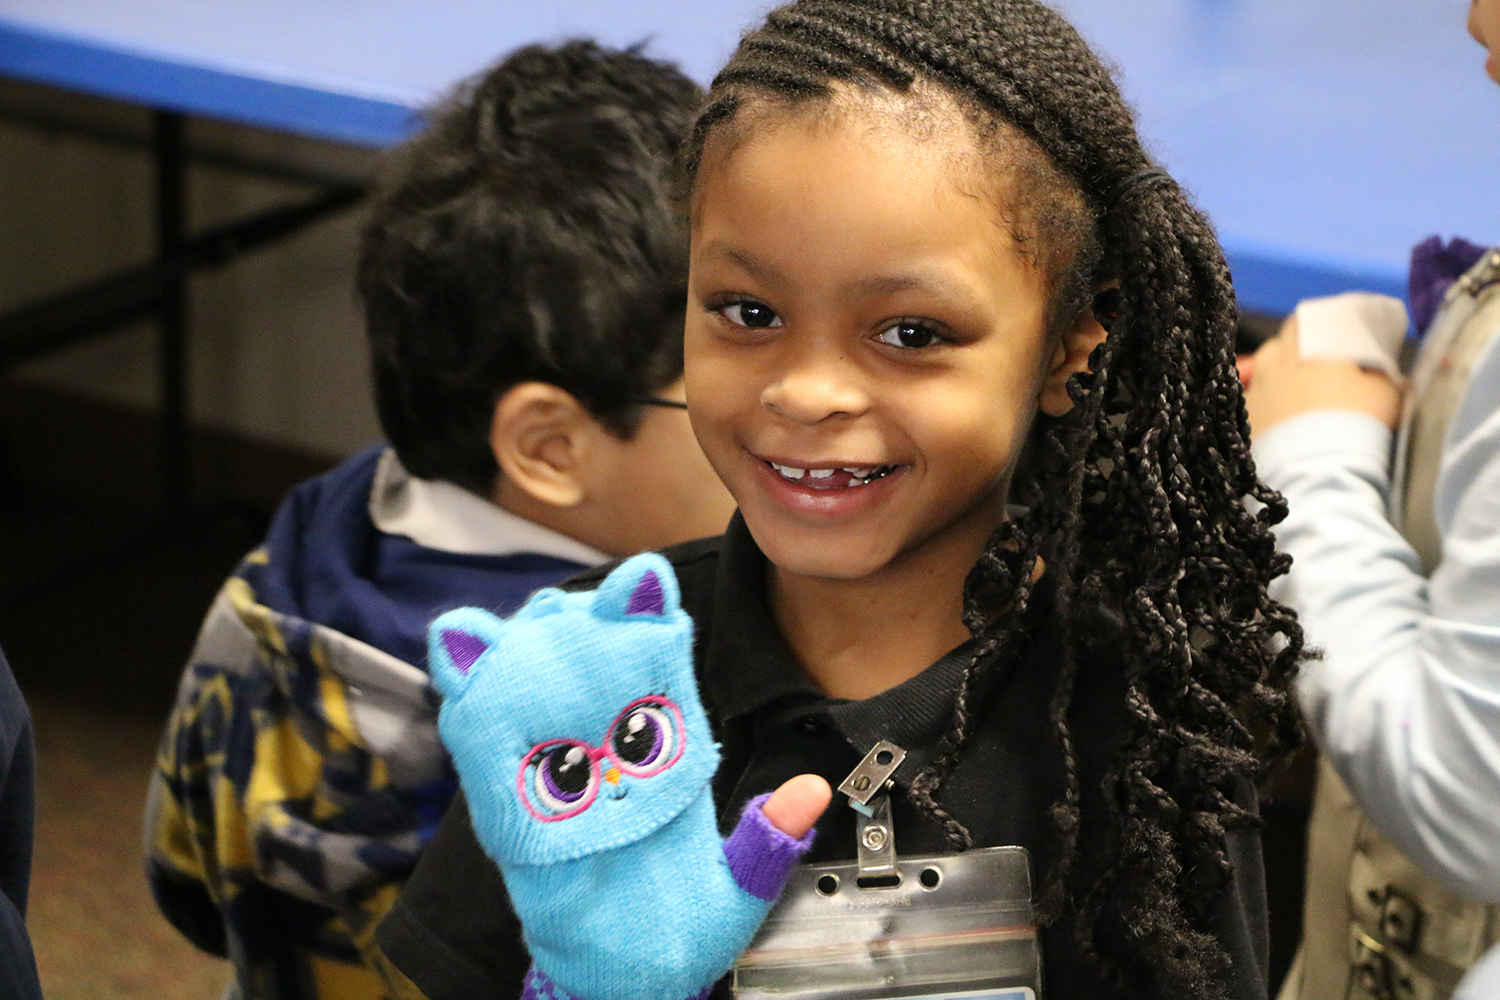 Please join BOMA as we warm the hands of children, teens and adults in Detroit! image